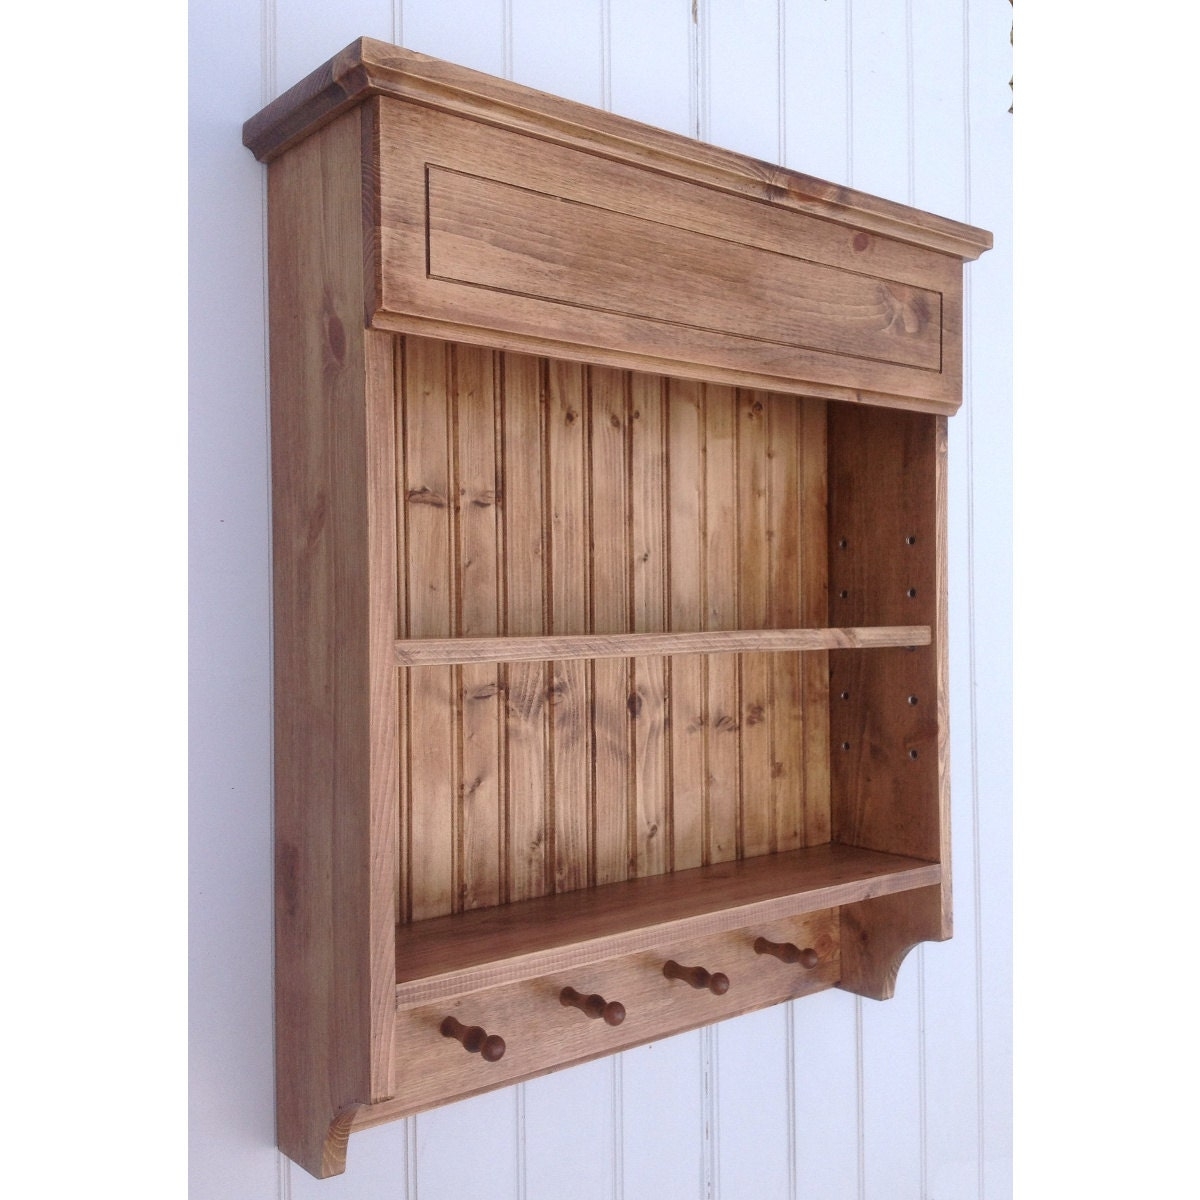 Shelf bookcases memorial wall displays antique white wall display -  Zoom